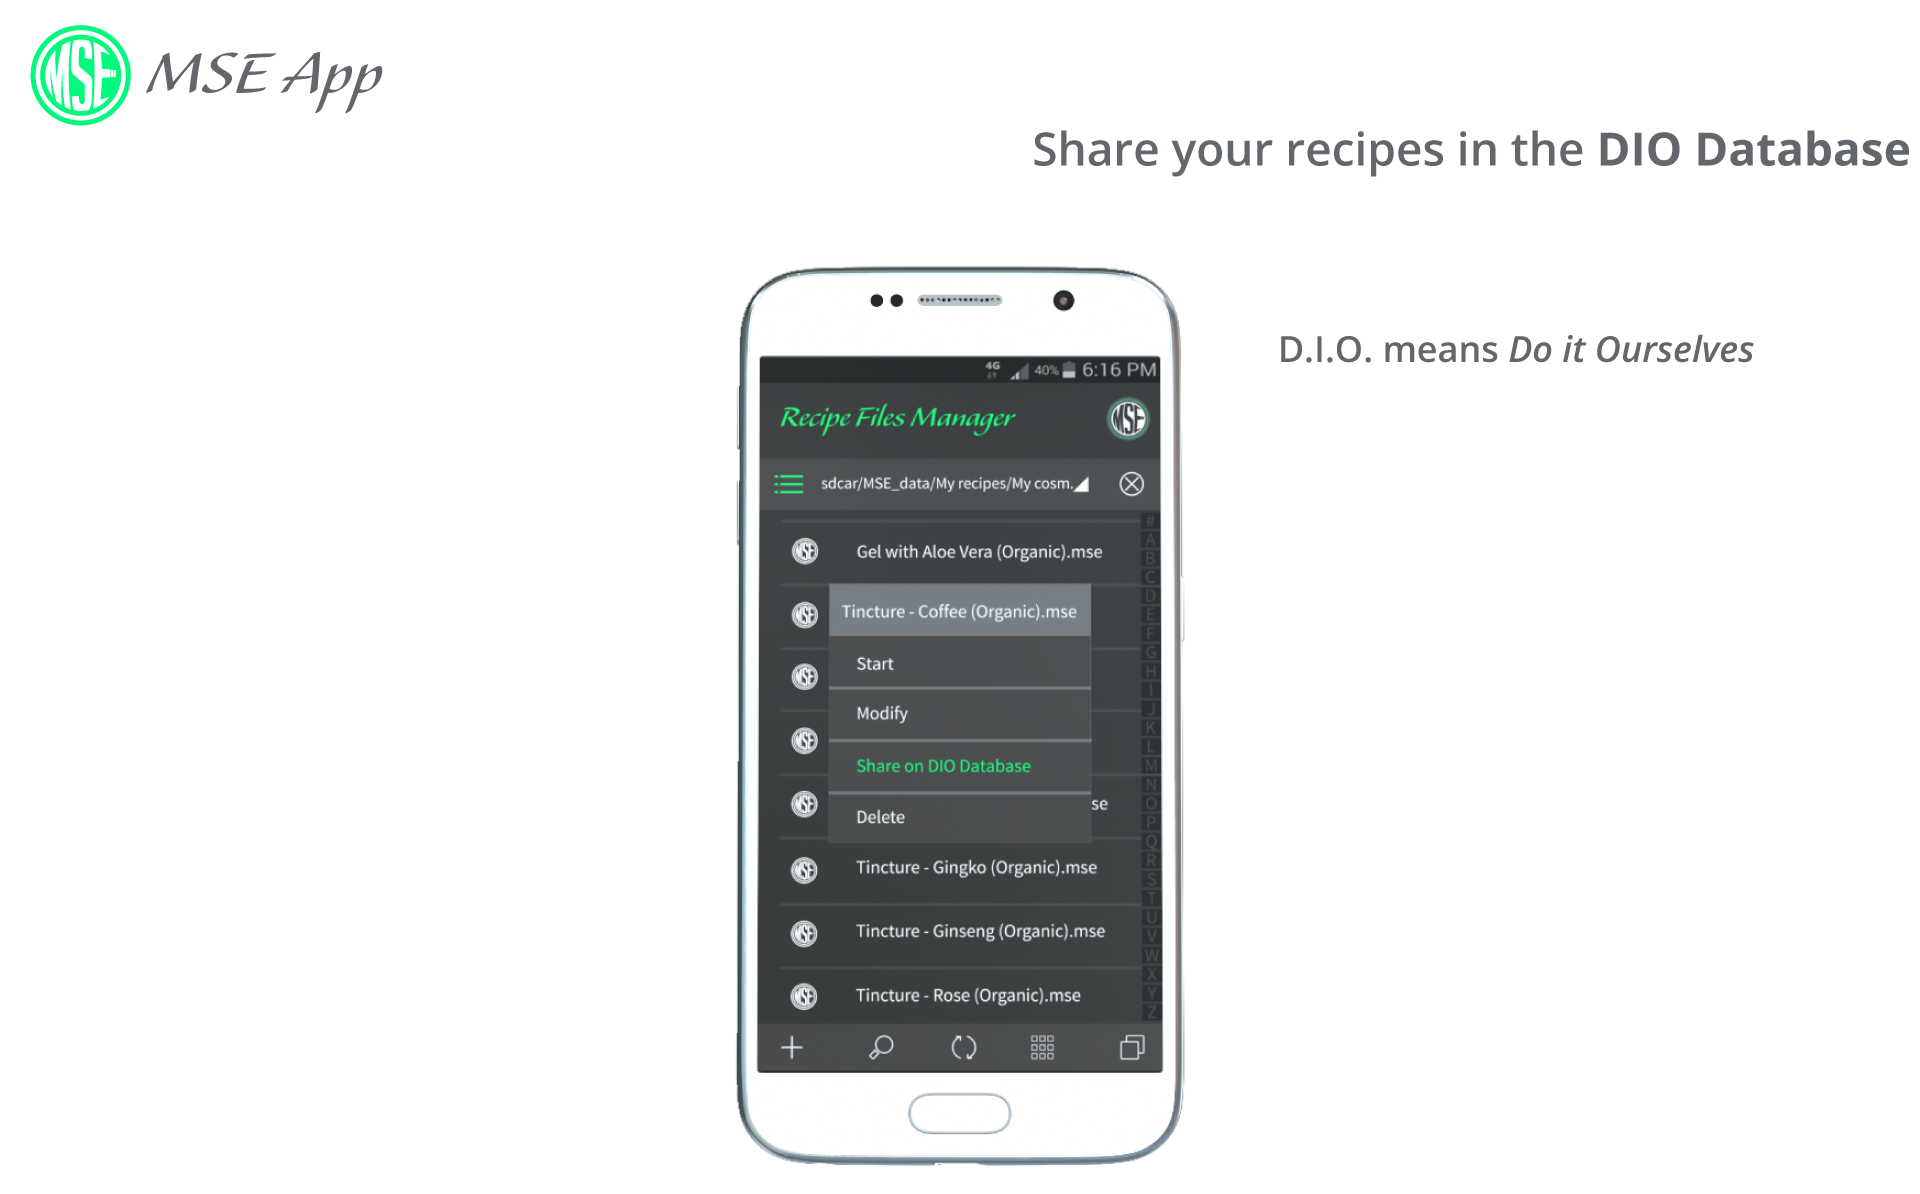 Share easily your recipes